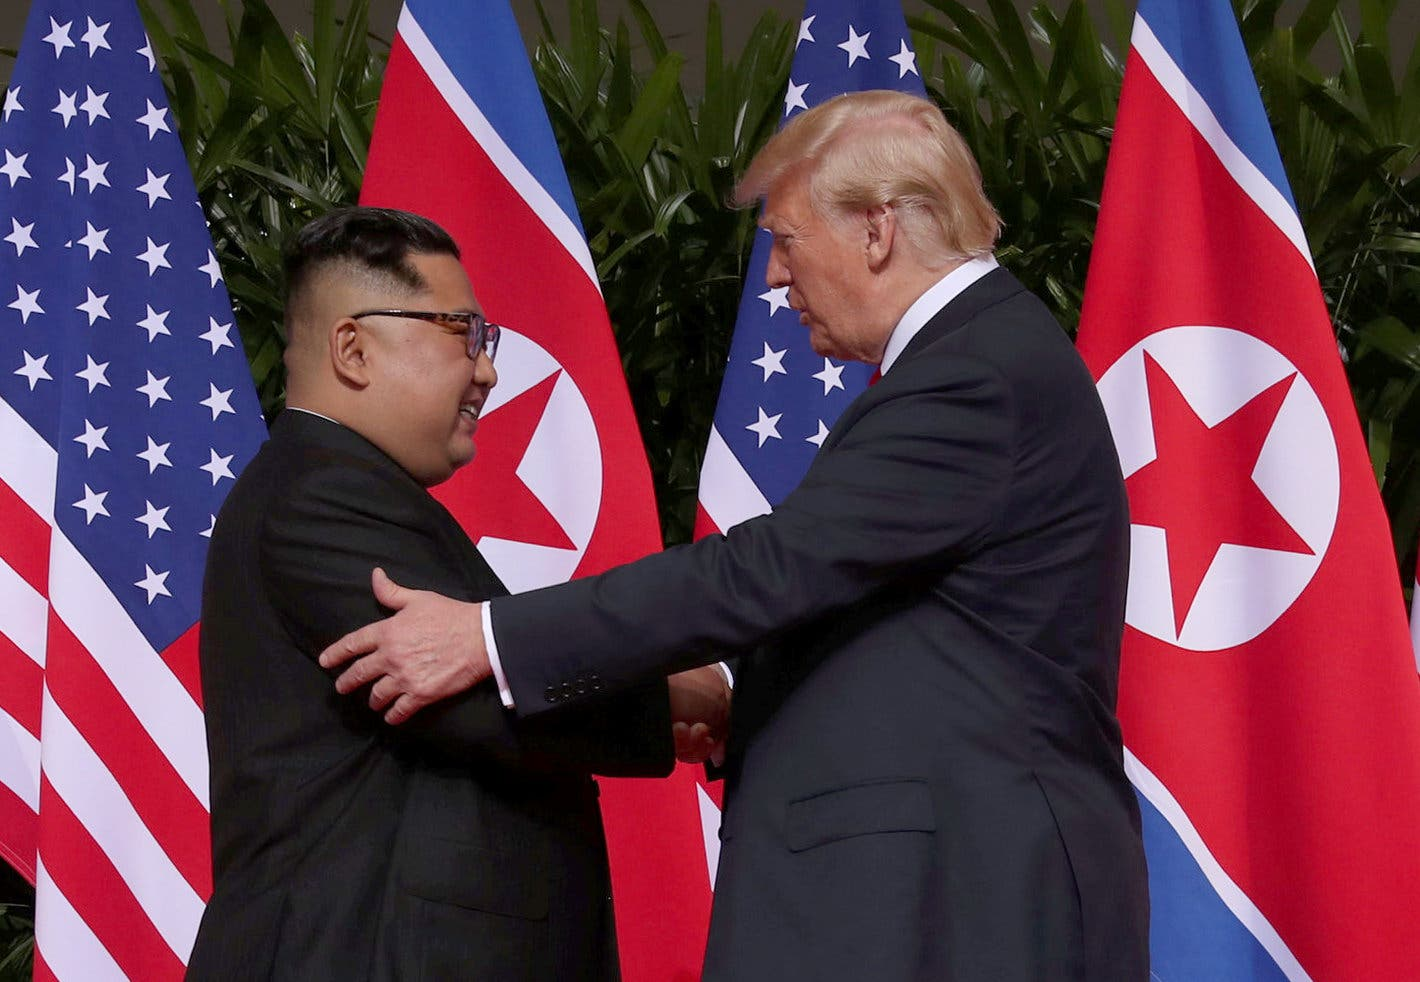 U.S. President Donald Trump shakes hands with North Korean leader Kim Jong Un at the Capella Hotel on Sentosa island in Singapore. (Reuters)